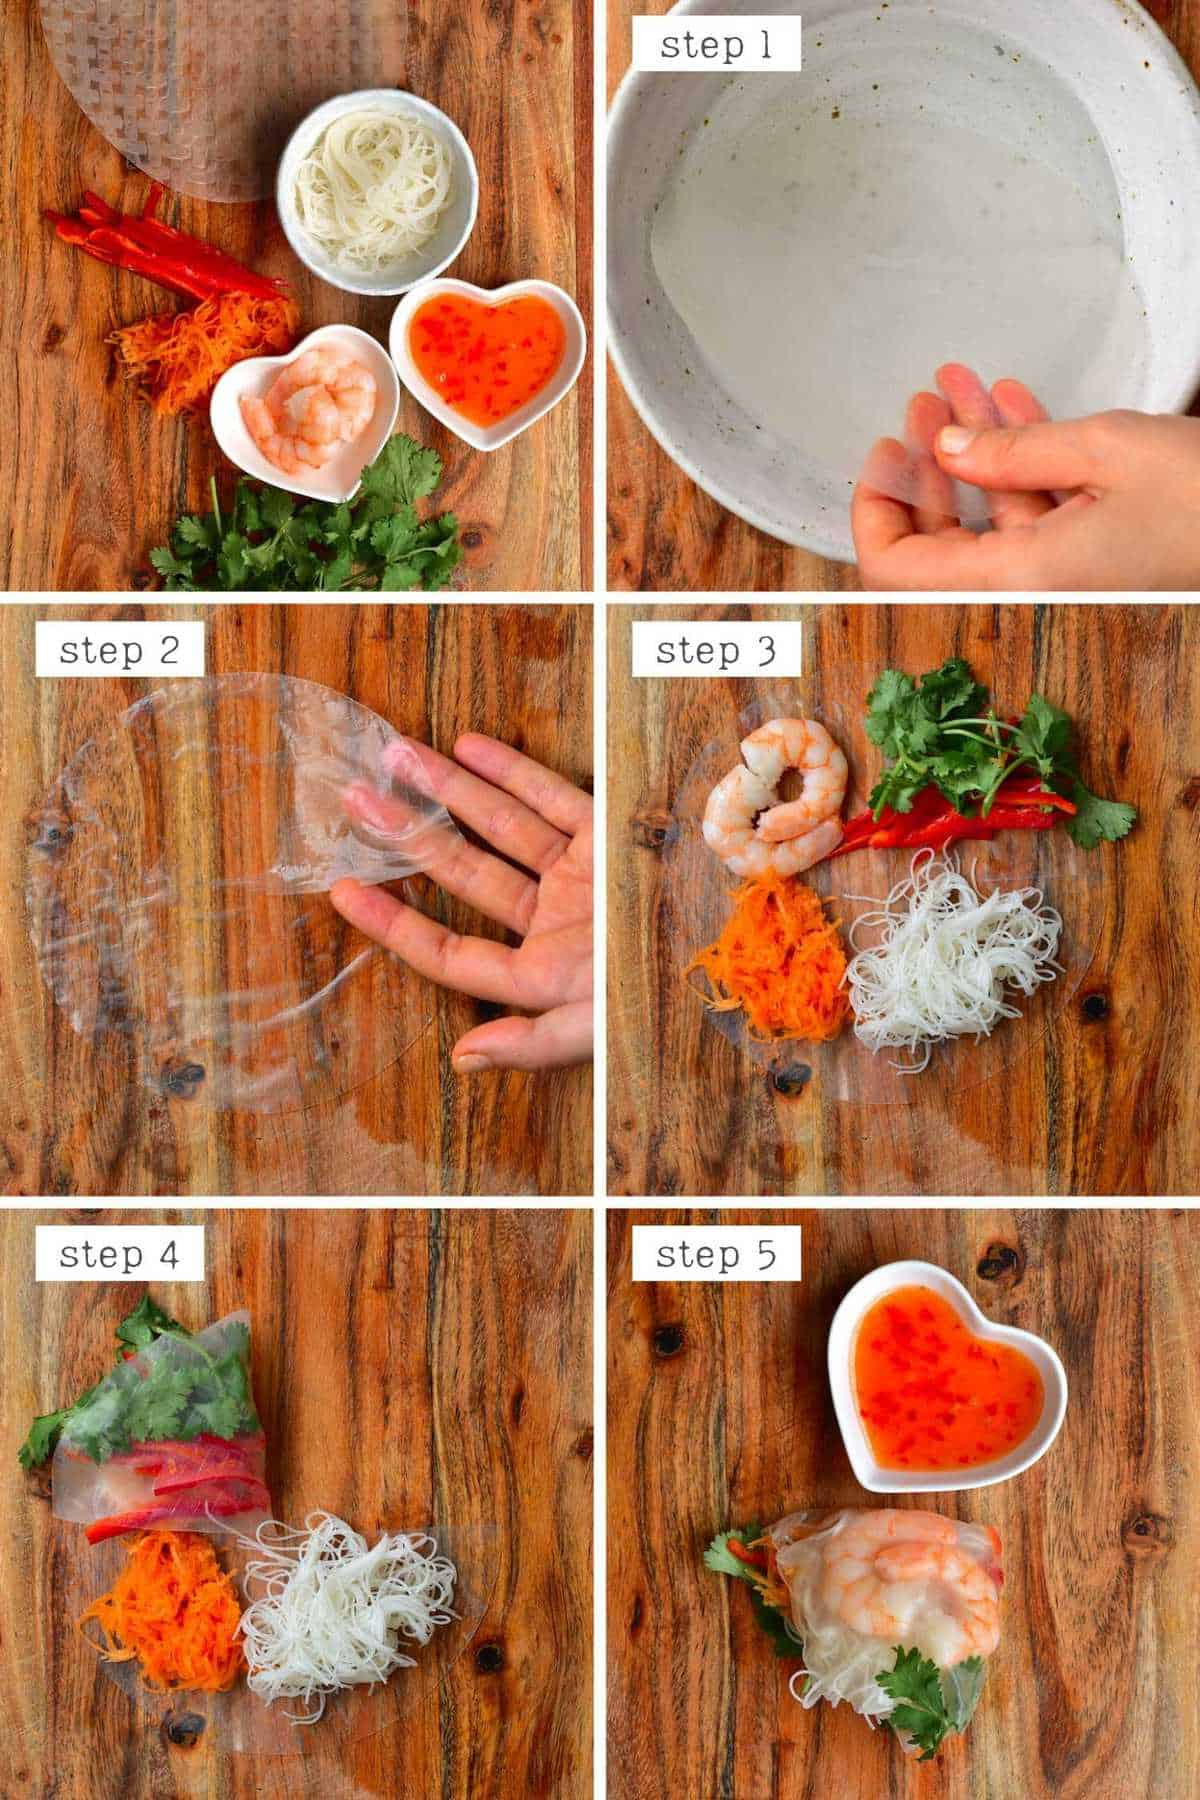 Steps for making rice paper tortilla